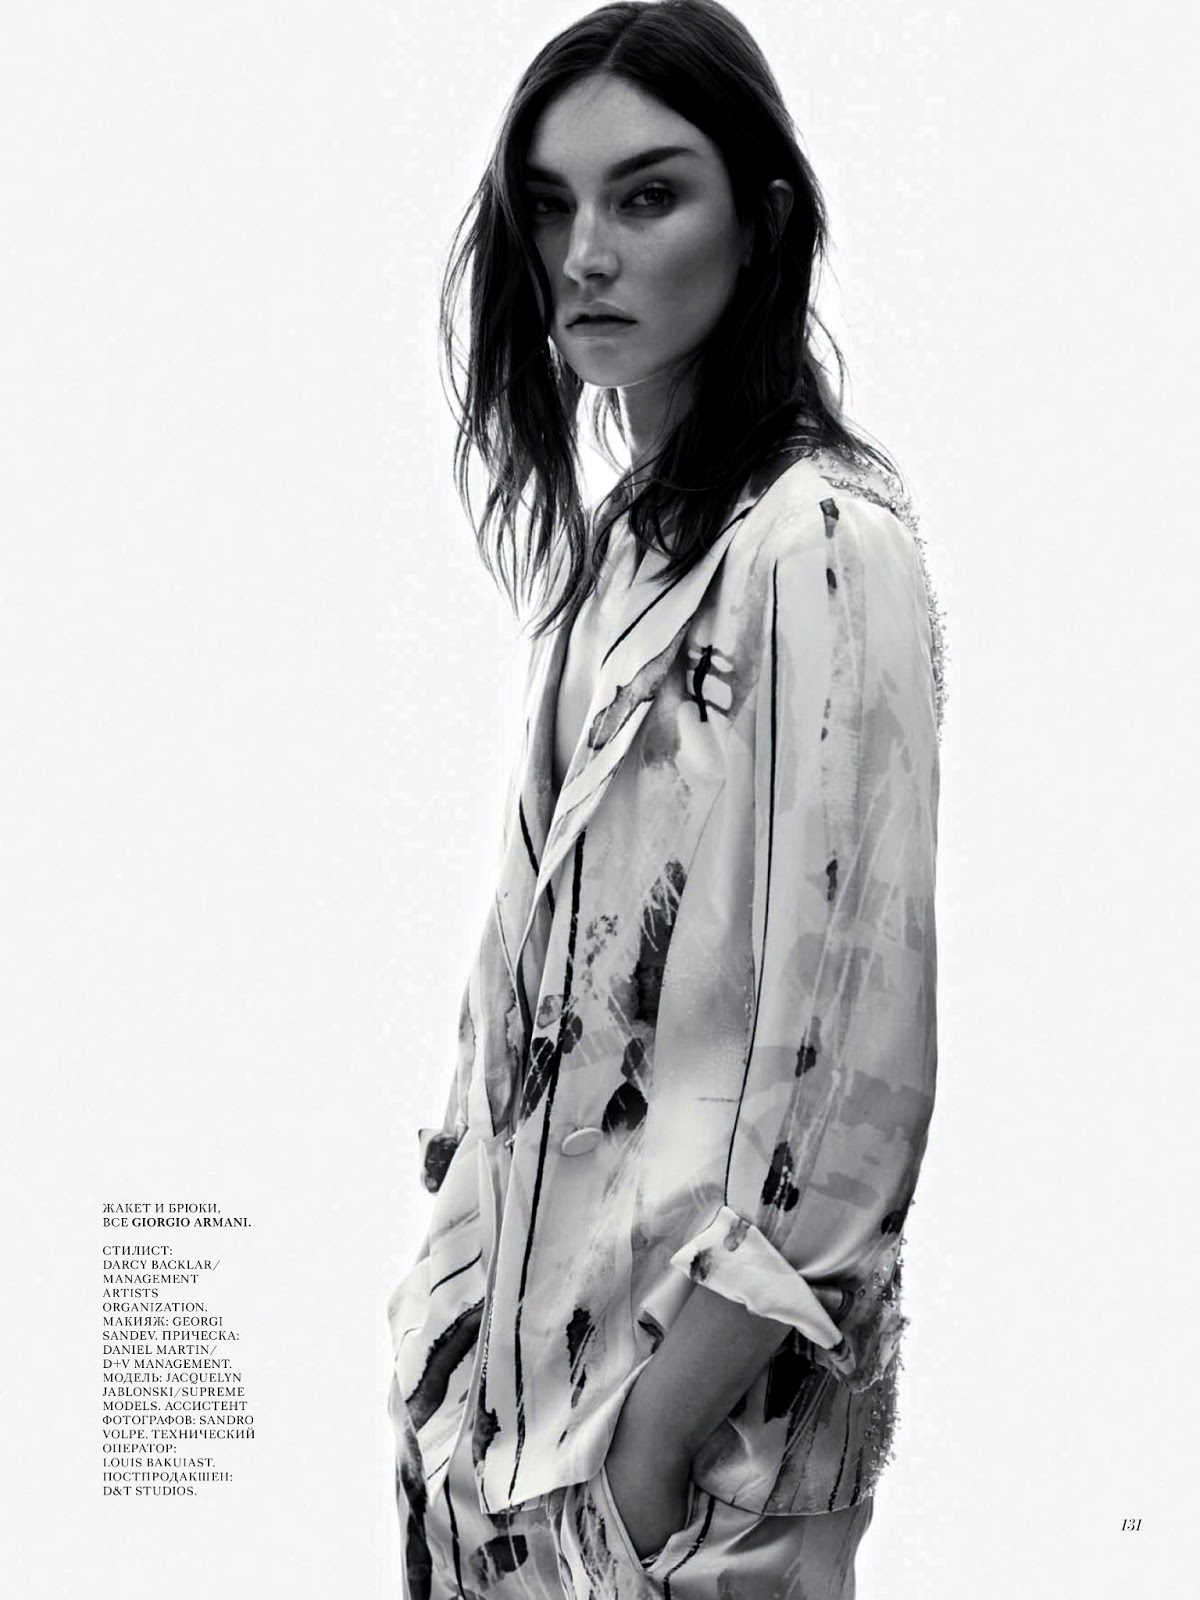 fashion_scans_remastered-jacquelyn_jablonski-interview_russia-march_2014-scanned_by_vampirehorde-hq-14